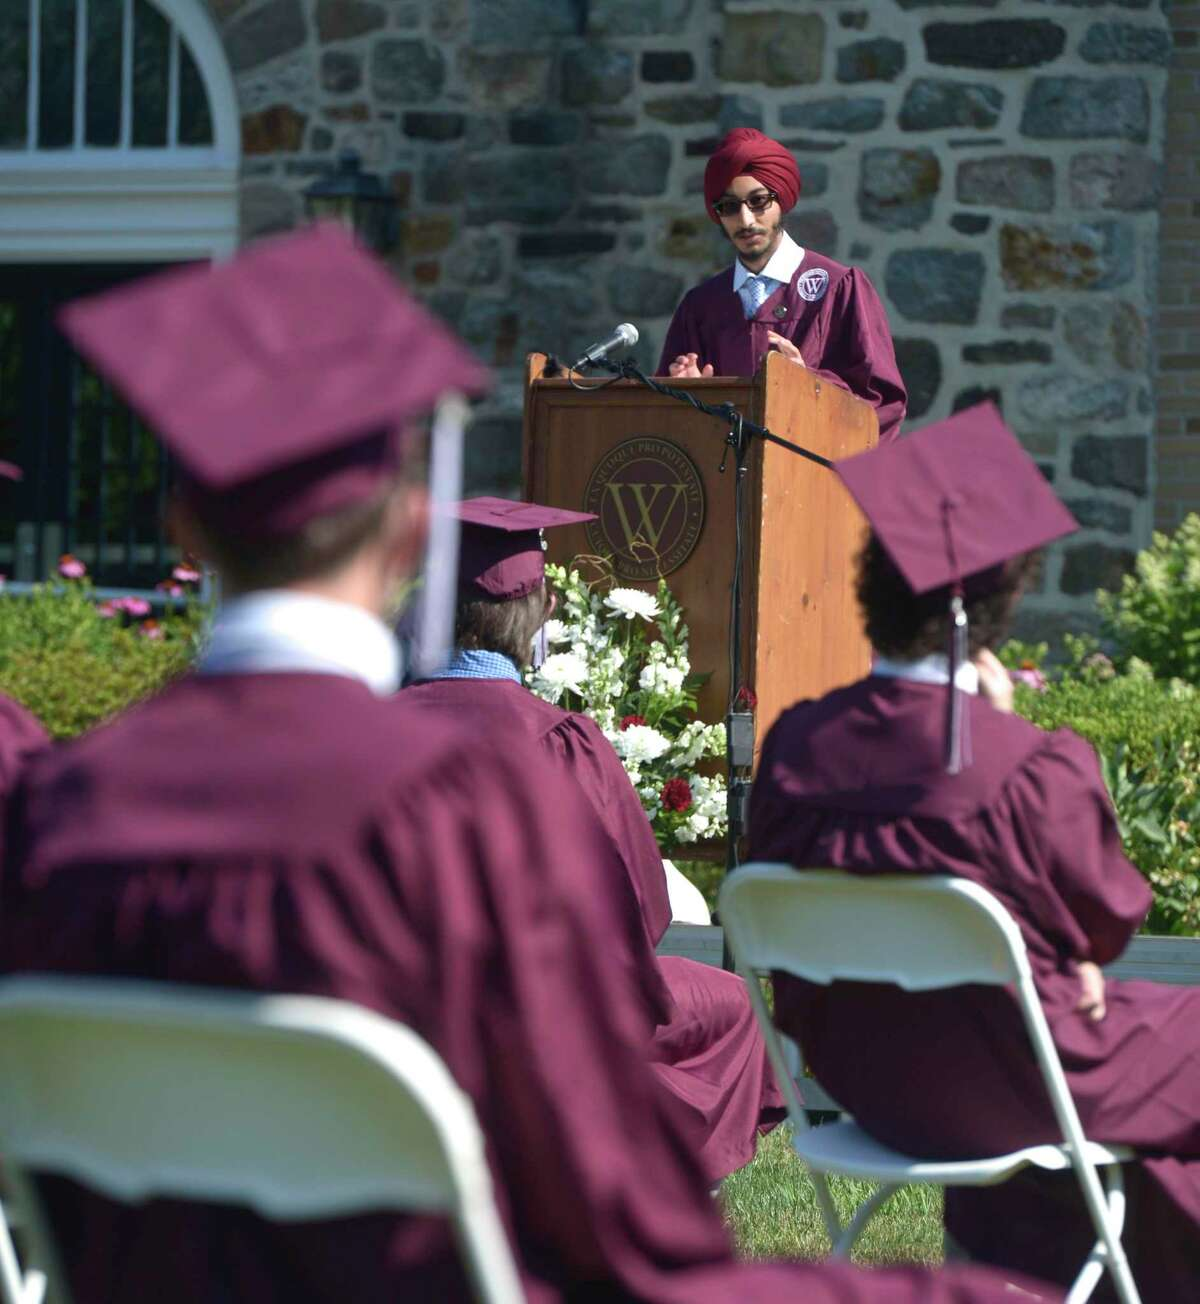 Sartaj Singh, class orator, gives his address during the Wooster School 2020 Commencement Exercises, Monday, July 6, 2020, on the school campus, Danbury, Conn.